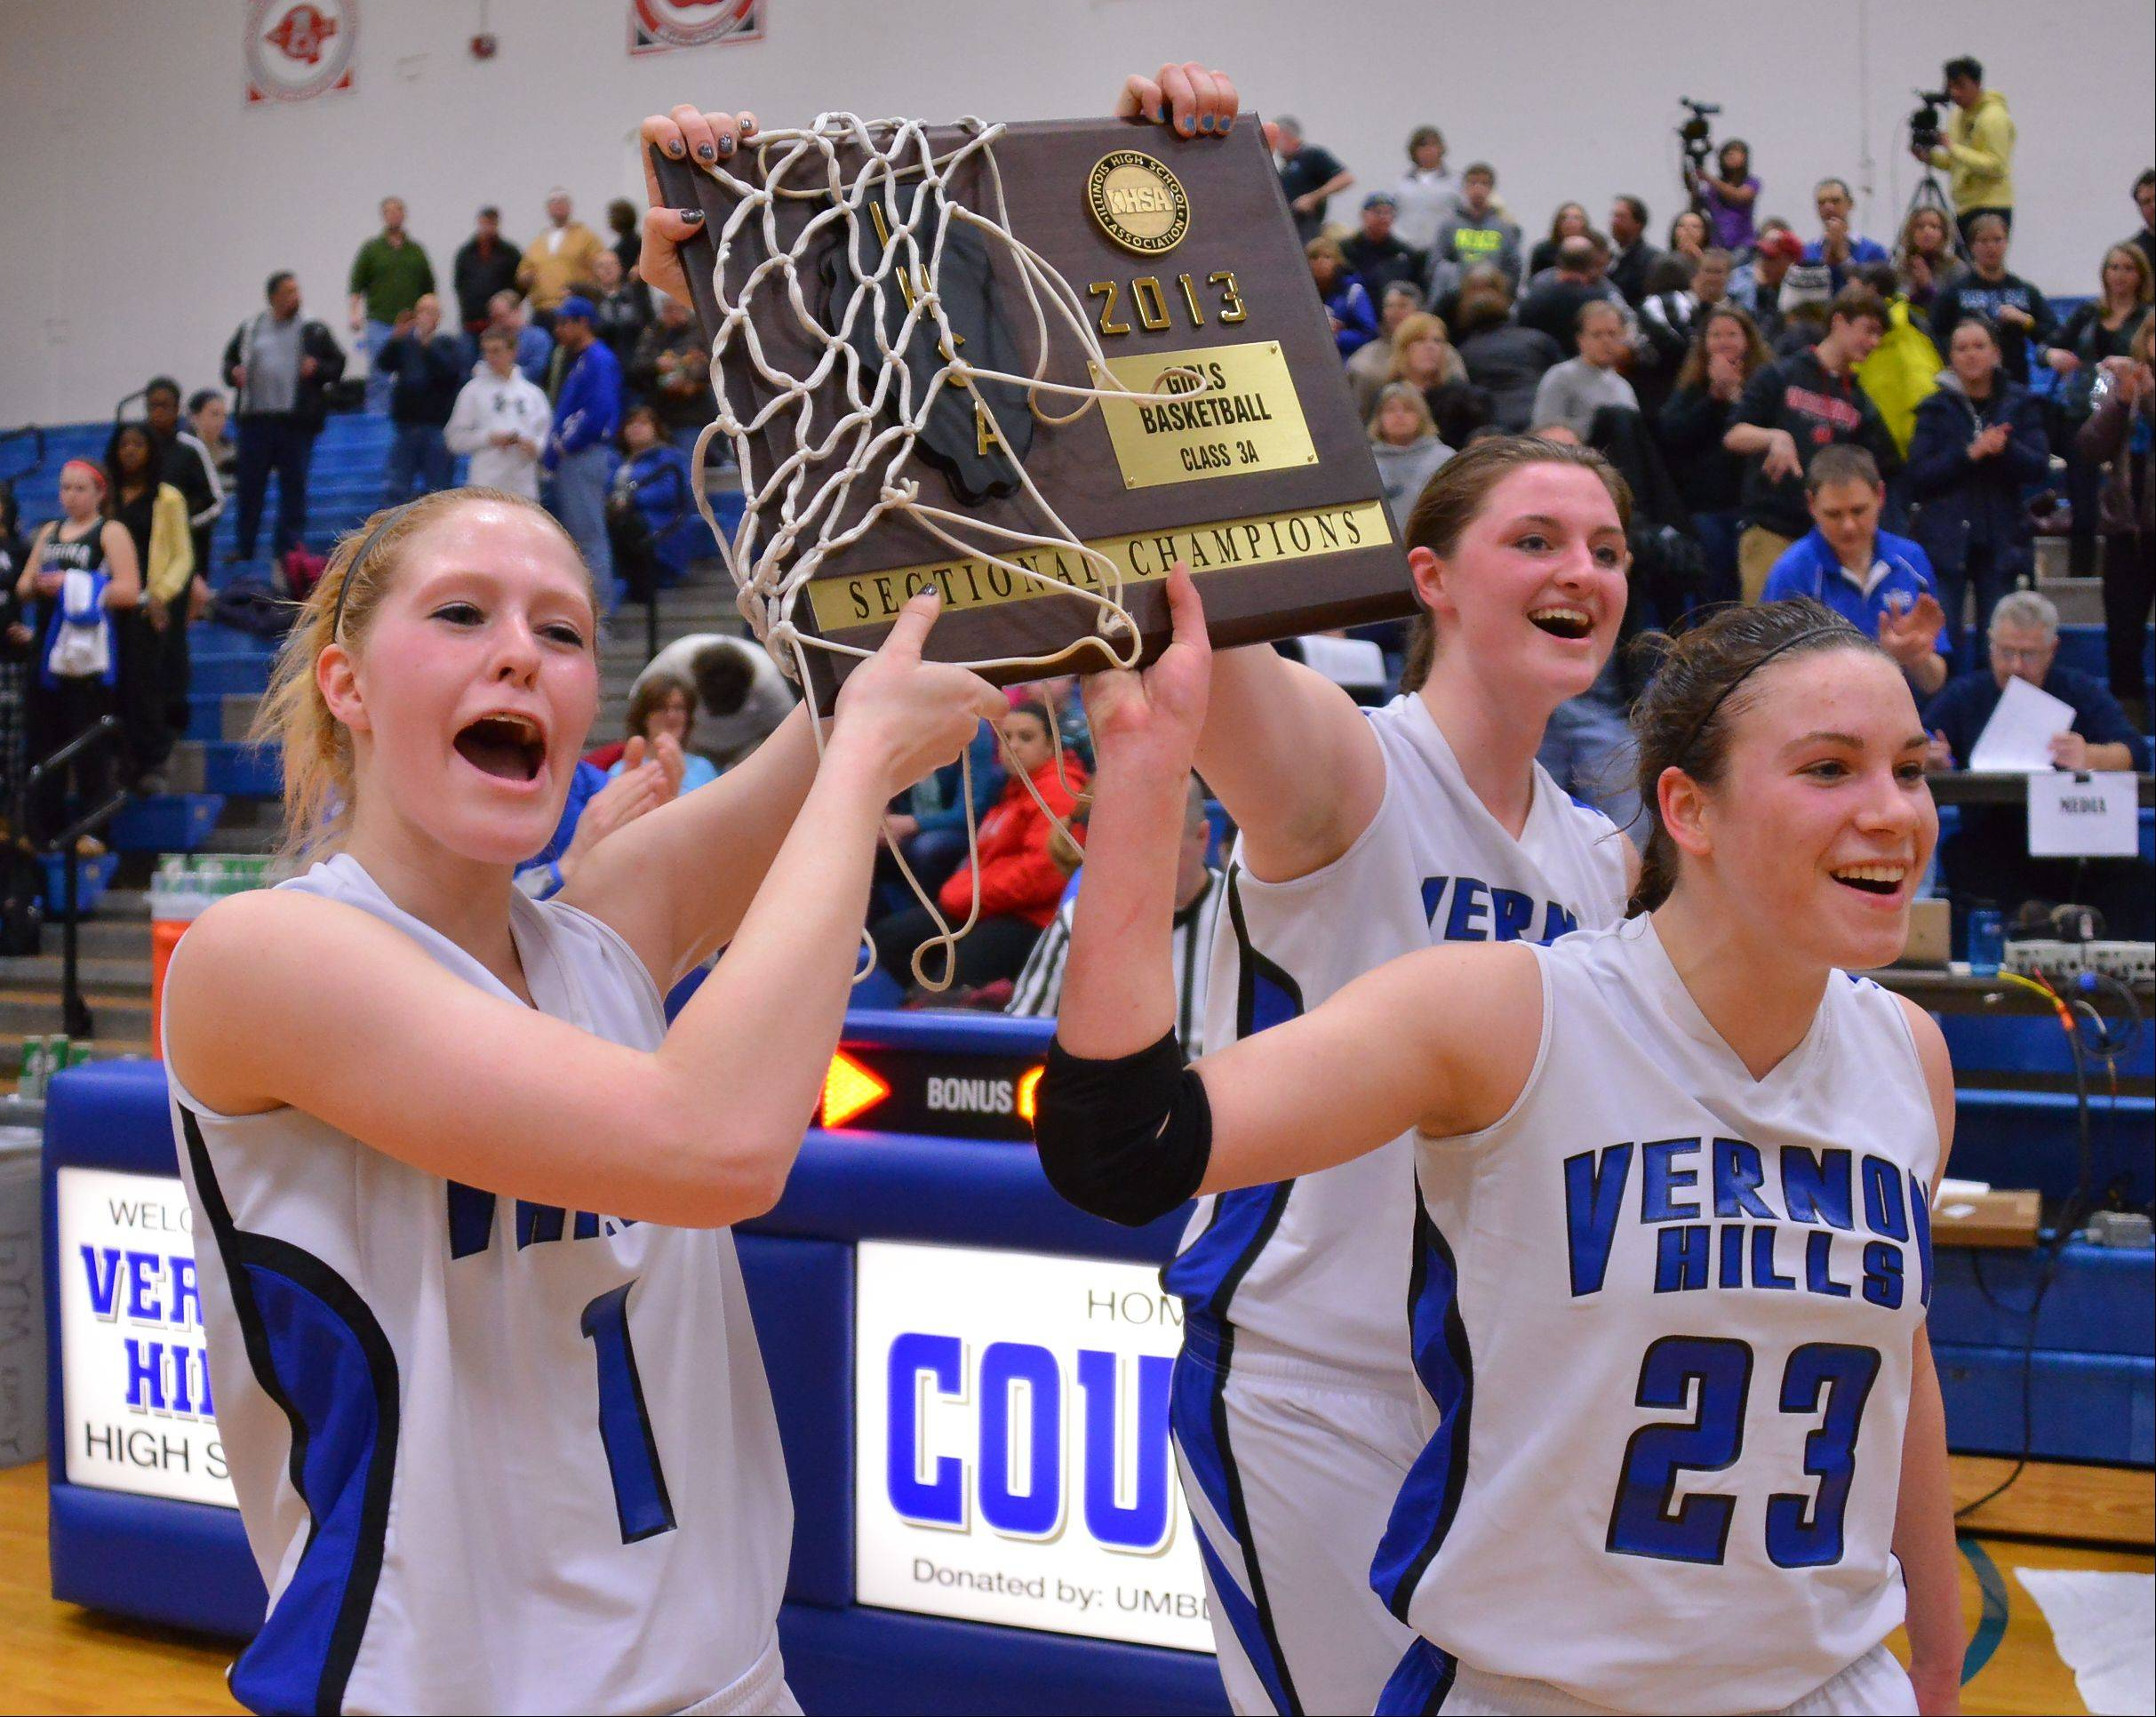 Images from the Vernon Hills vs. Regina Dominican Class 3A girls basketball sectional final on Thursday, Feb. 21 in Vernon Hills.